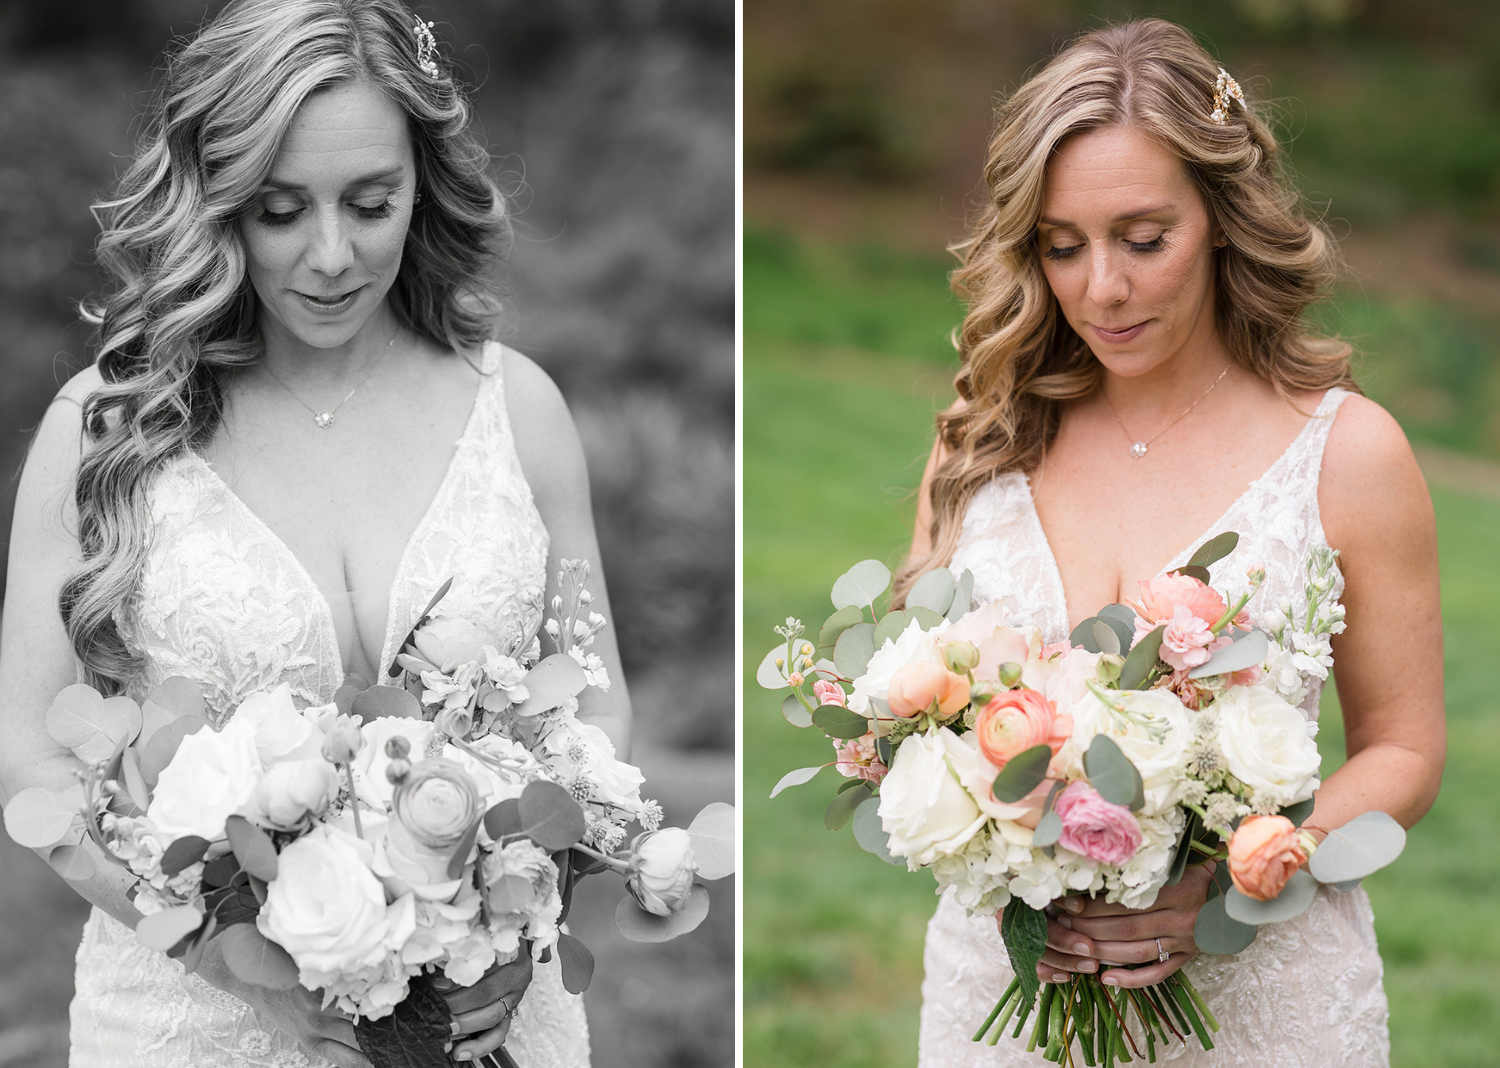 outdoor bridal portraits of the bride with her bouquet